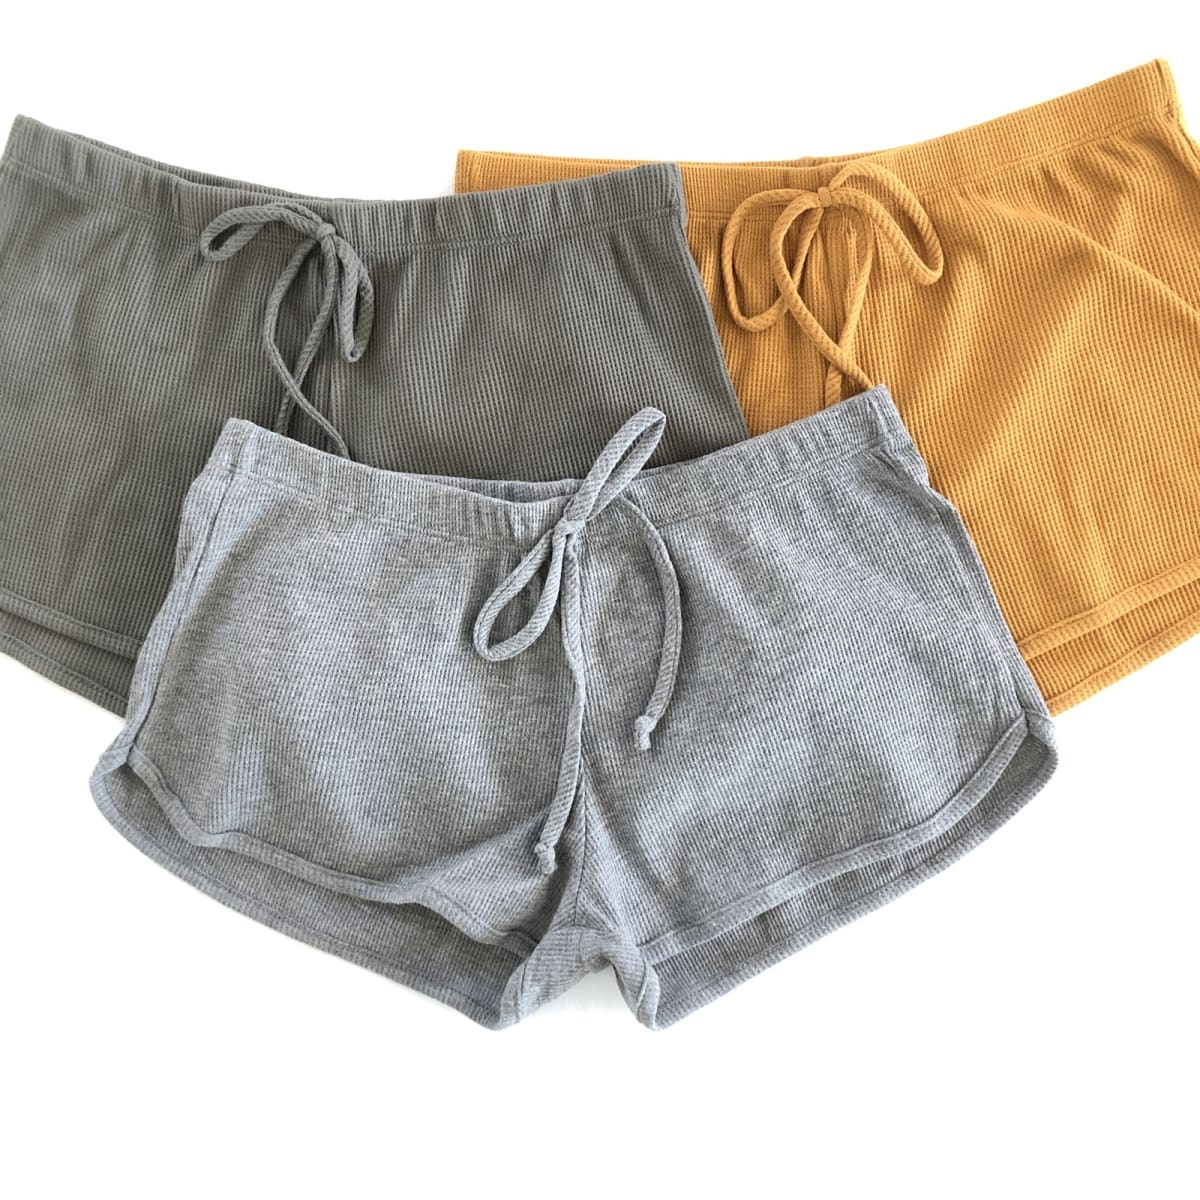 Lounge Shorts ONLY $6.99 (Reg. $20)